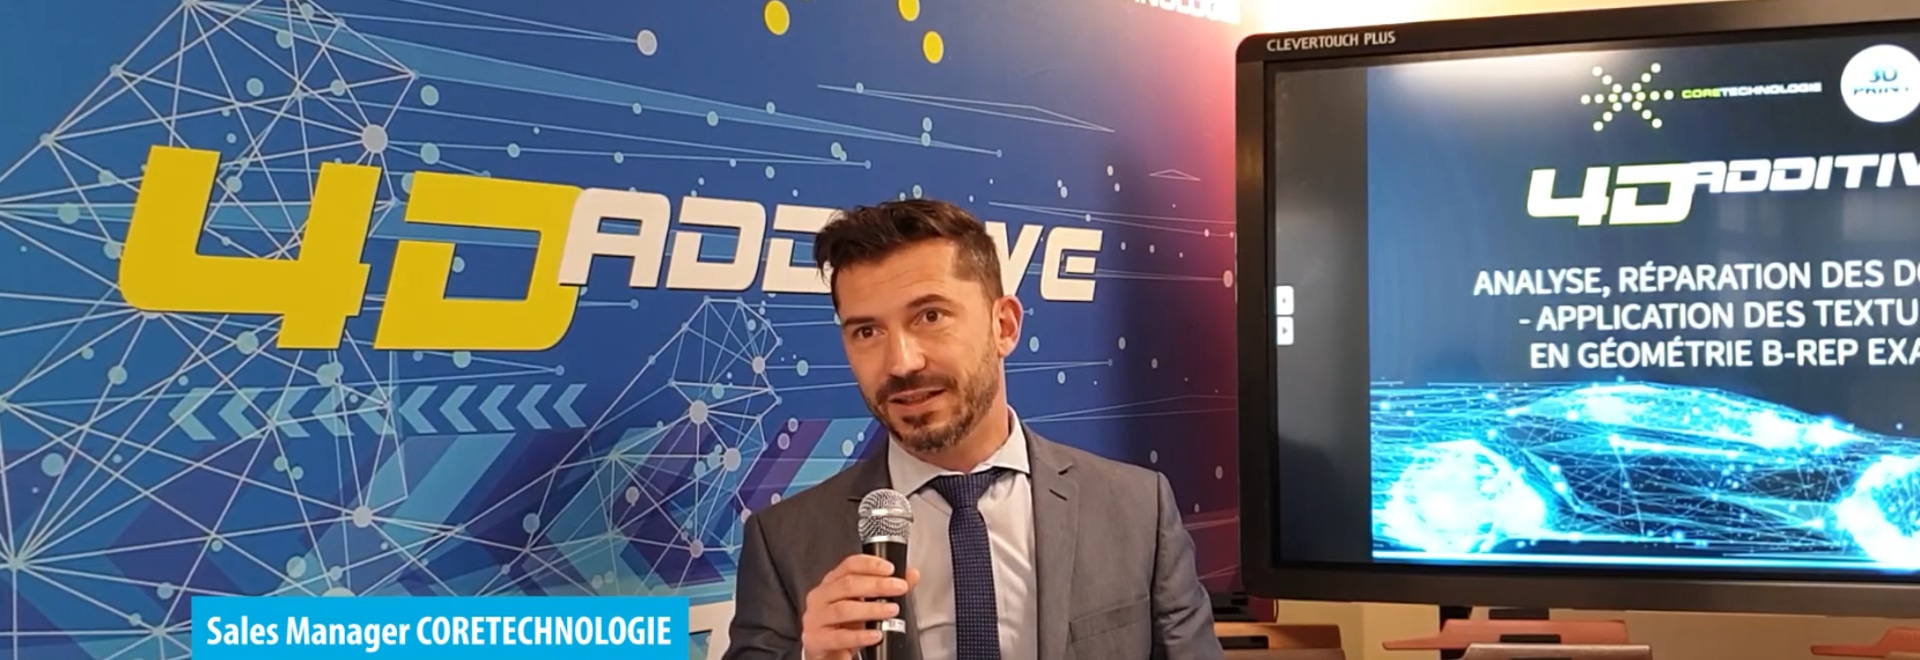 Interview with Jérôme Renard and Georges Teiti, sales developers for CoreTechnologie